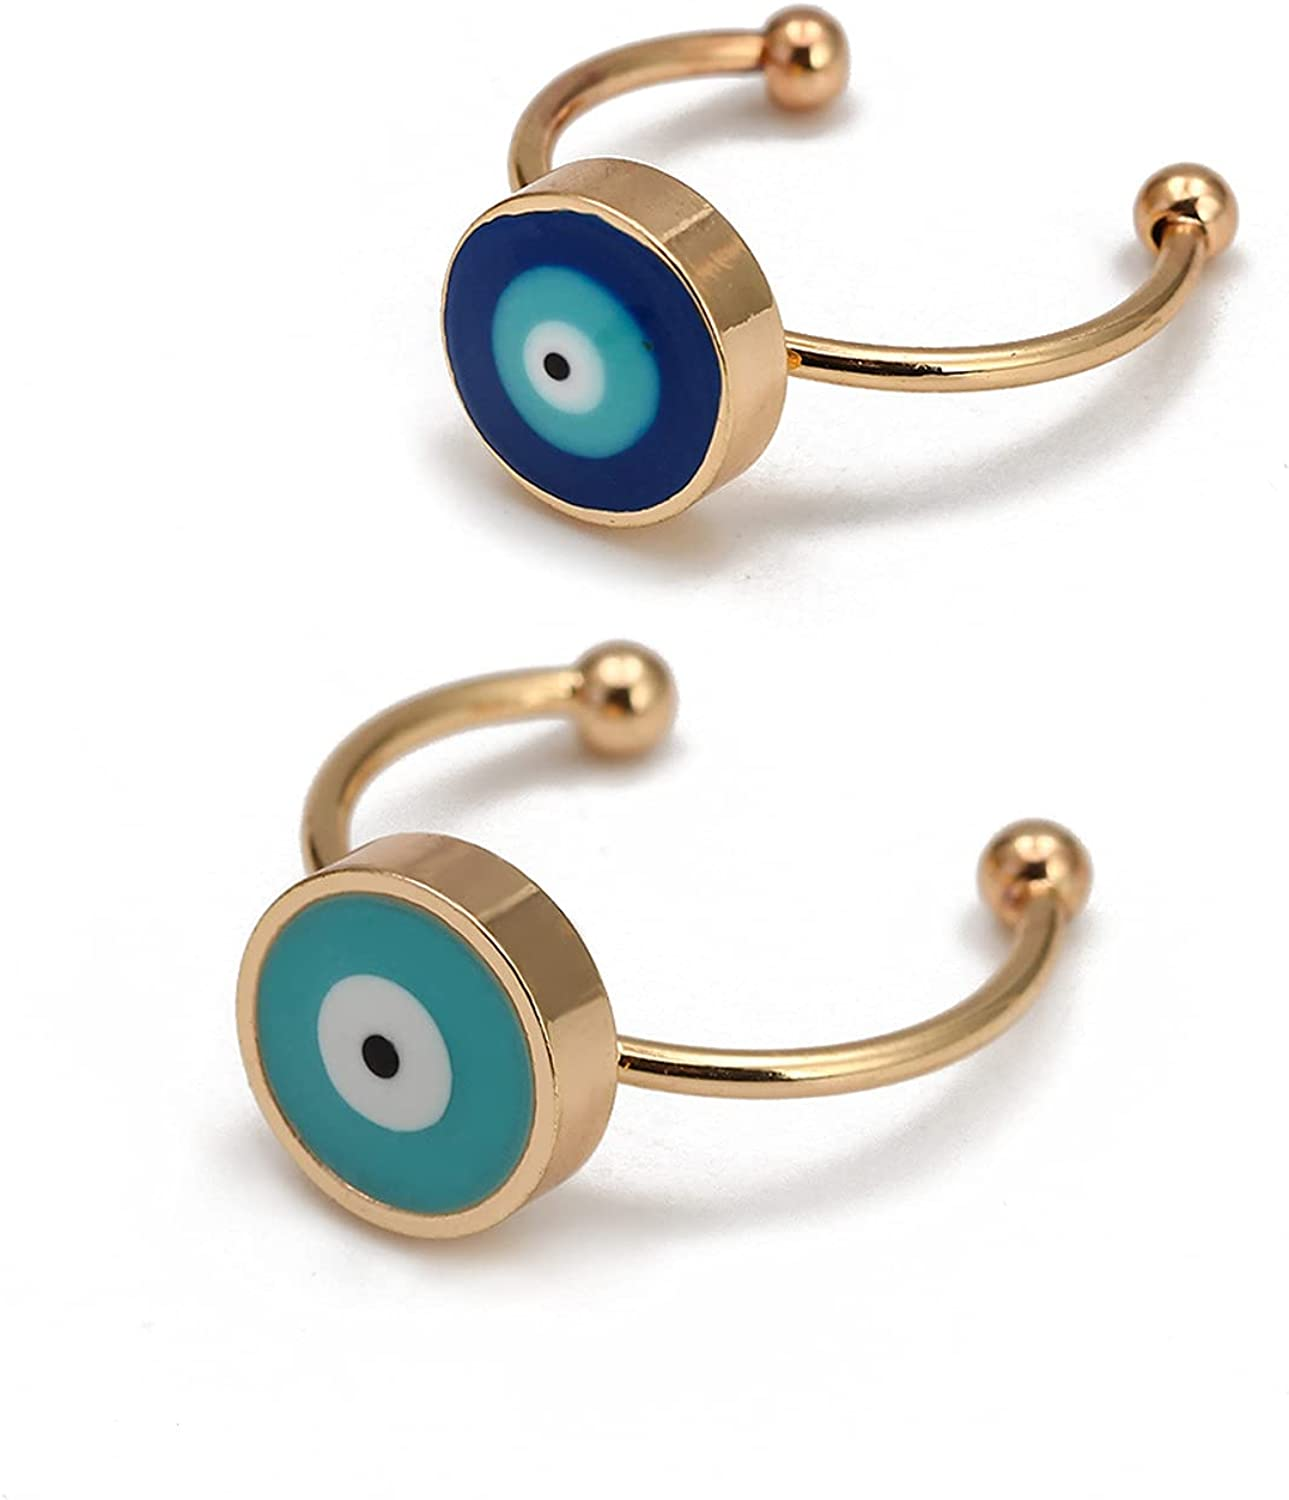 COLORFUL BLING Classic Gold Plated Turkish Lucky Symbol Evil Eye Open Statement Rings for Women Protection Adjustable Size Stackable Ring 2Pcs/Pack